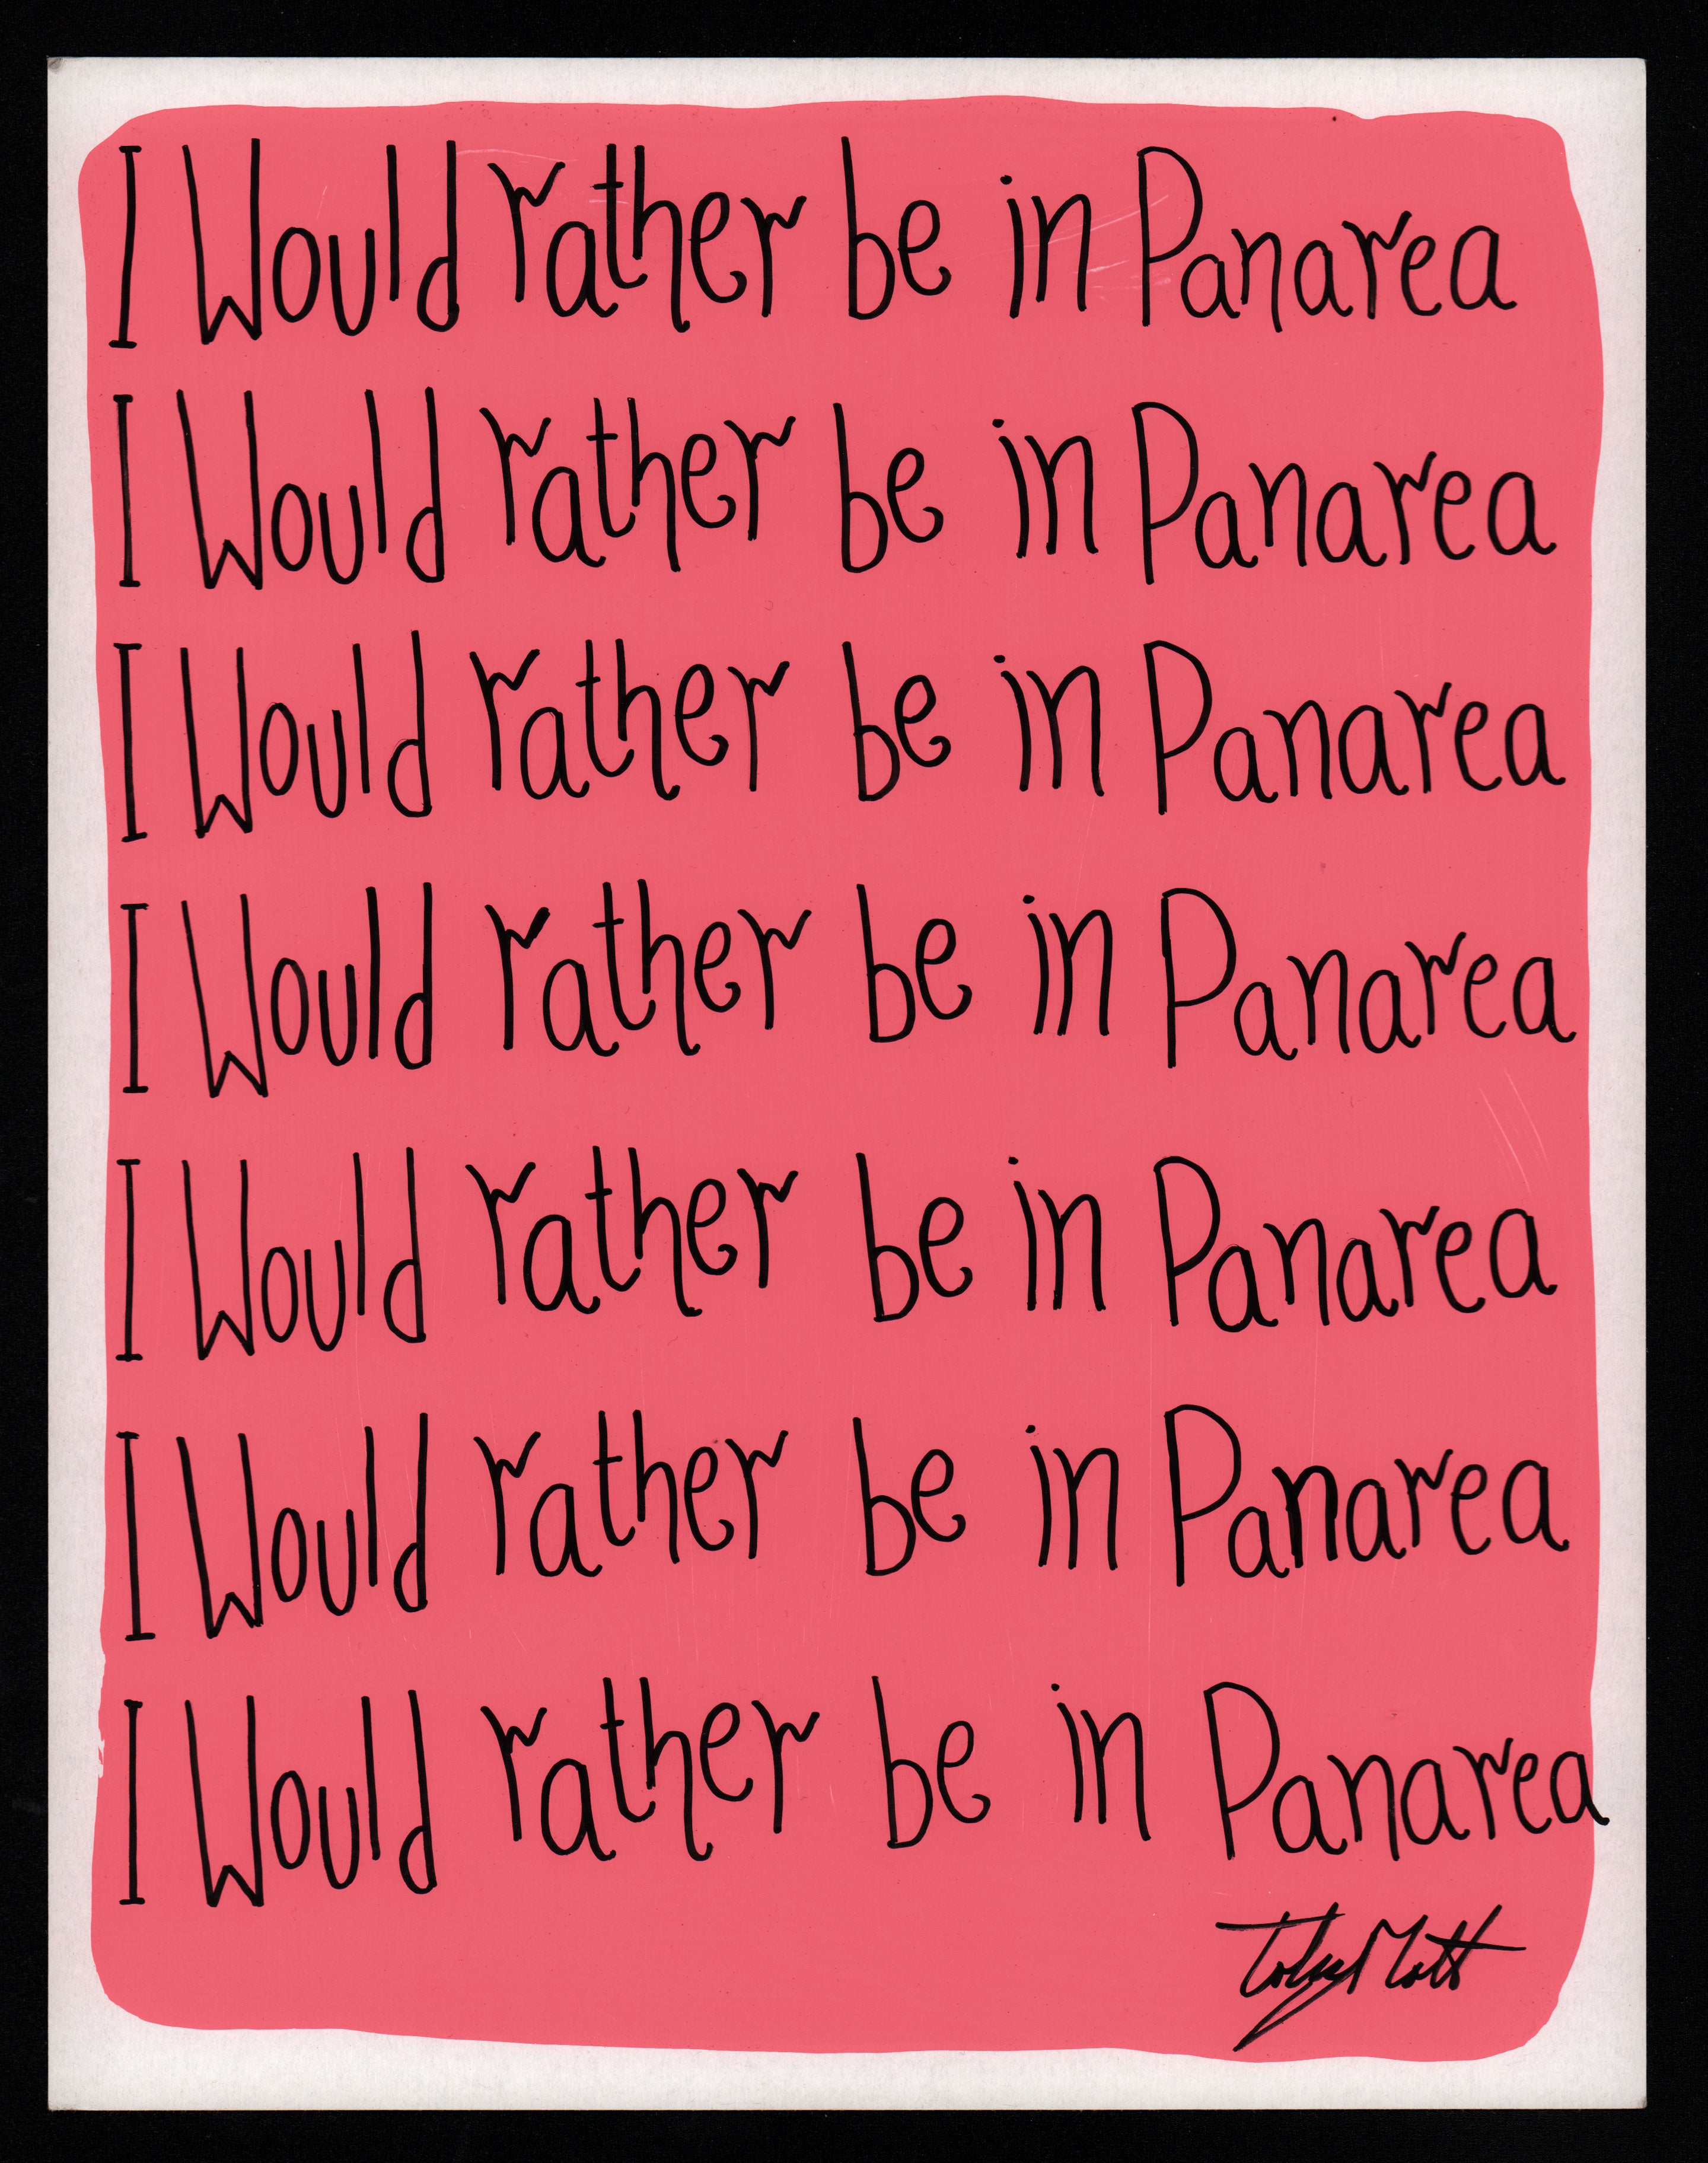 I would rather be in Panarea